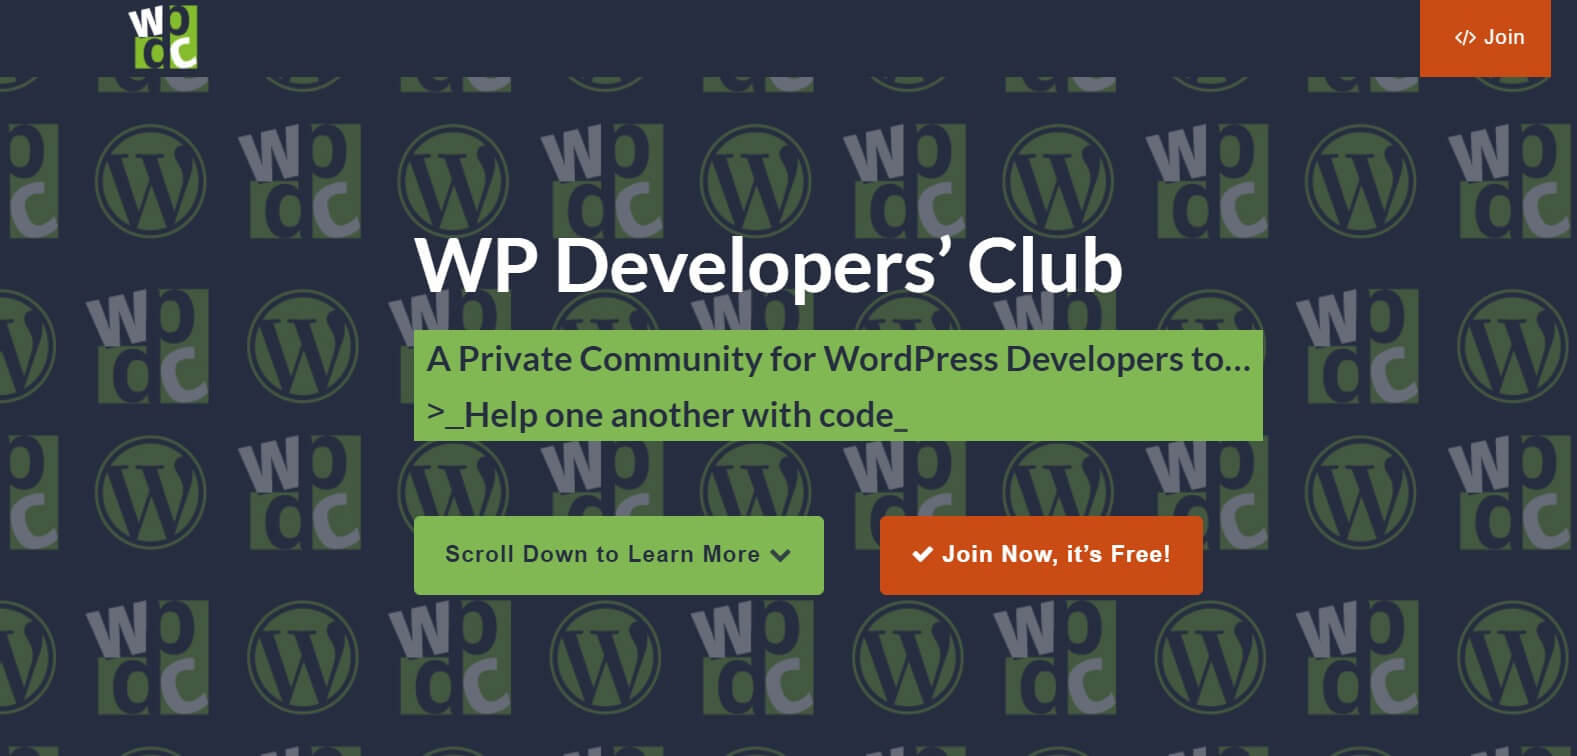 The WP Developers' Club website homepage